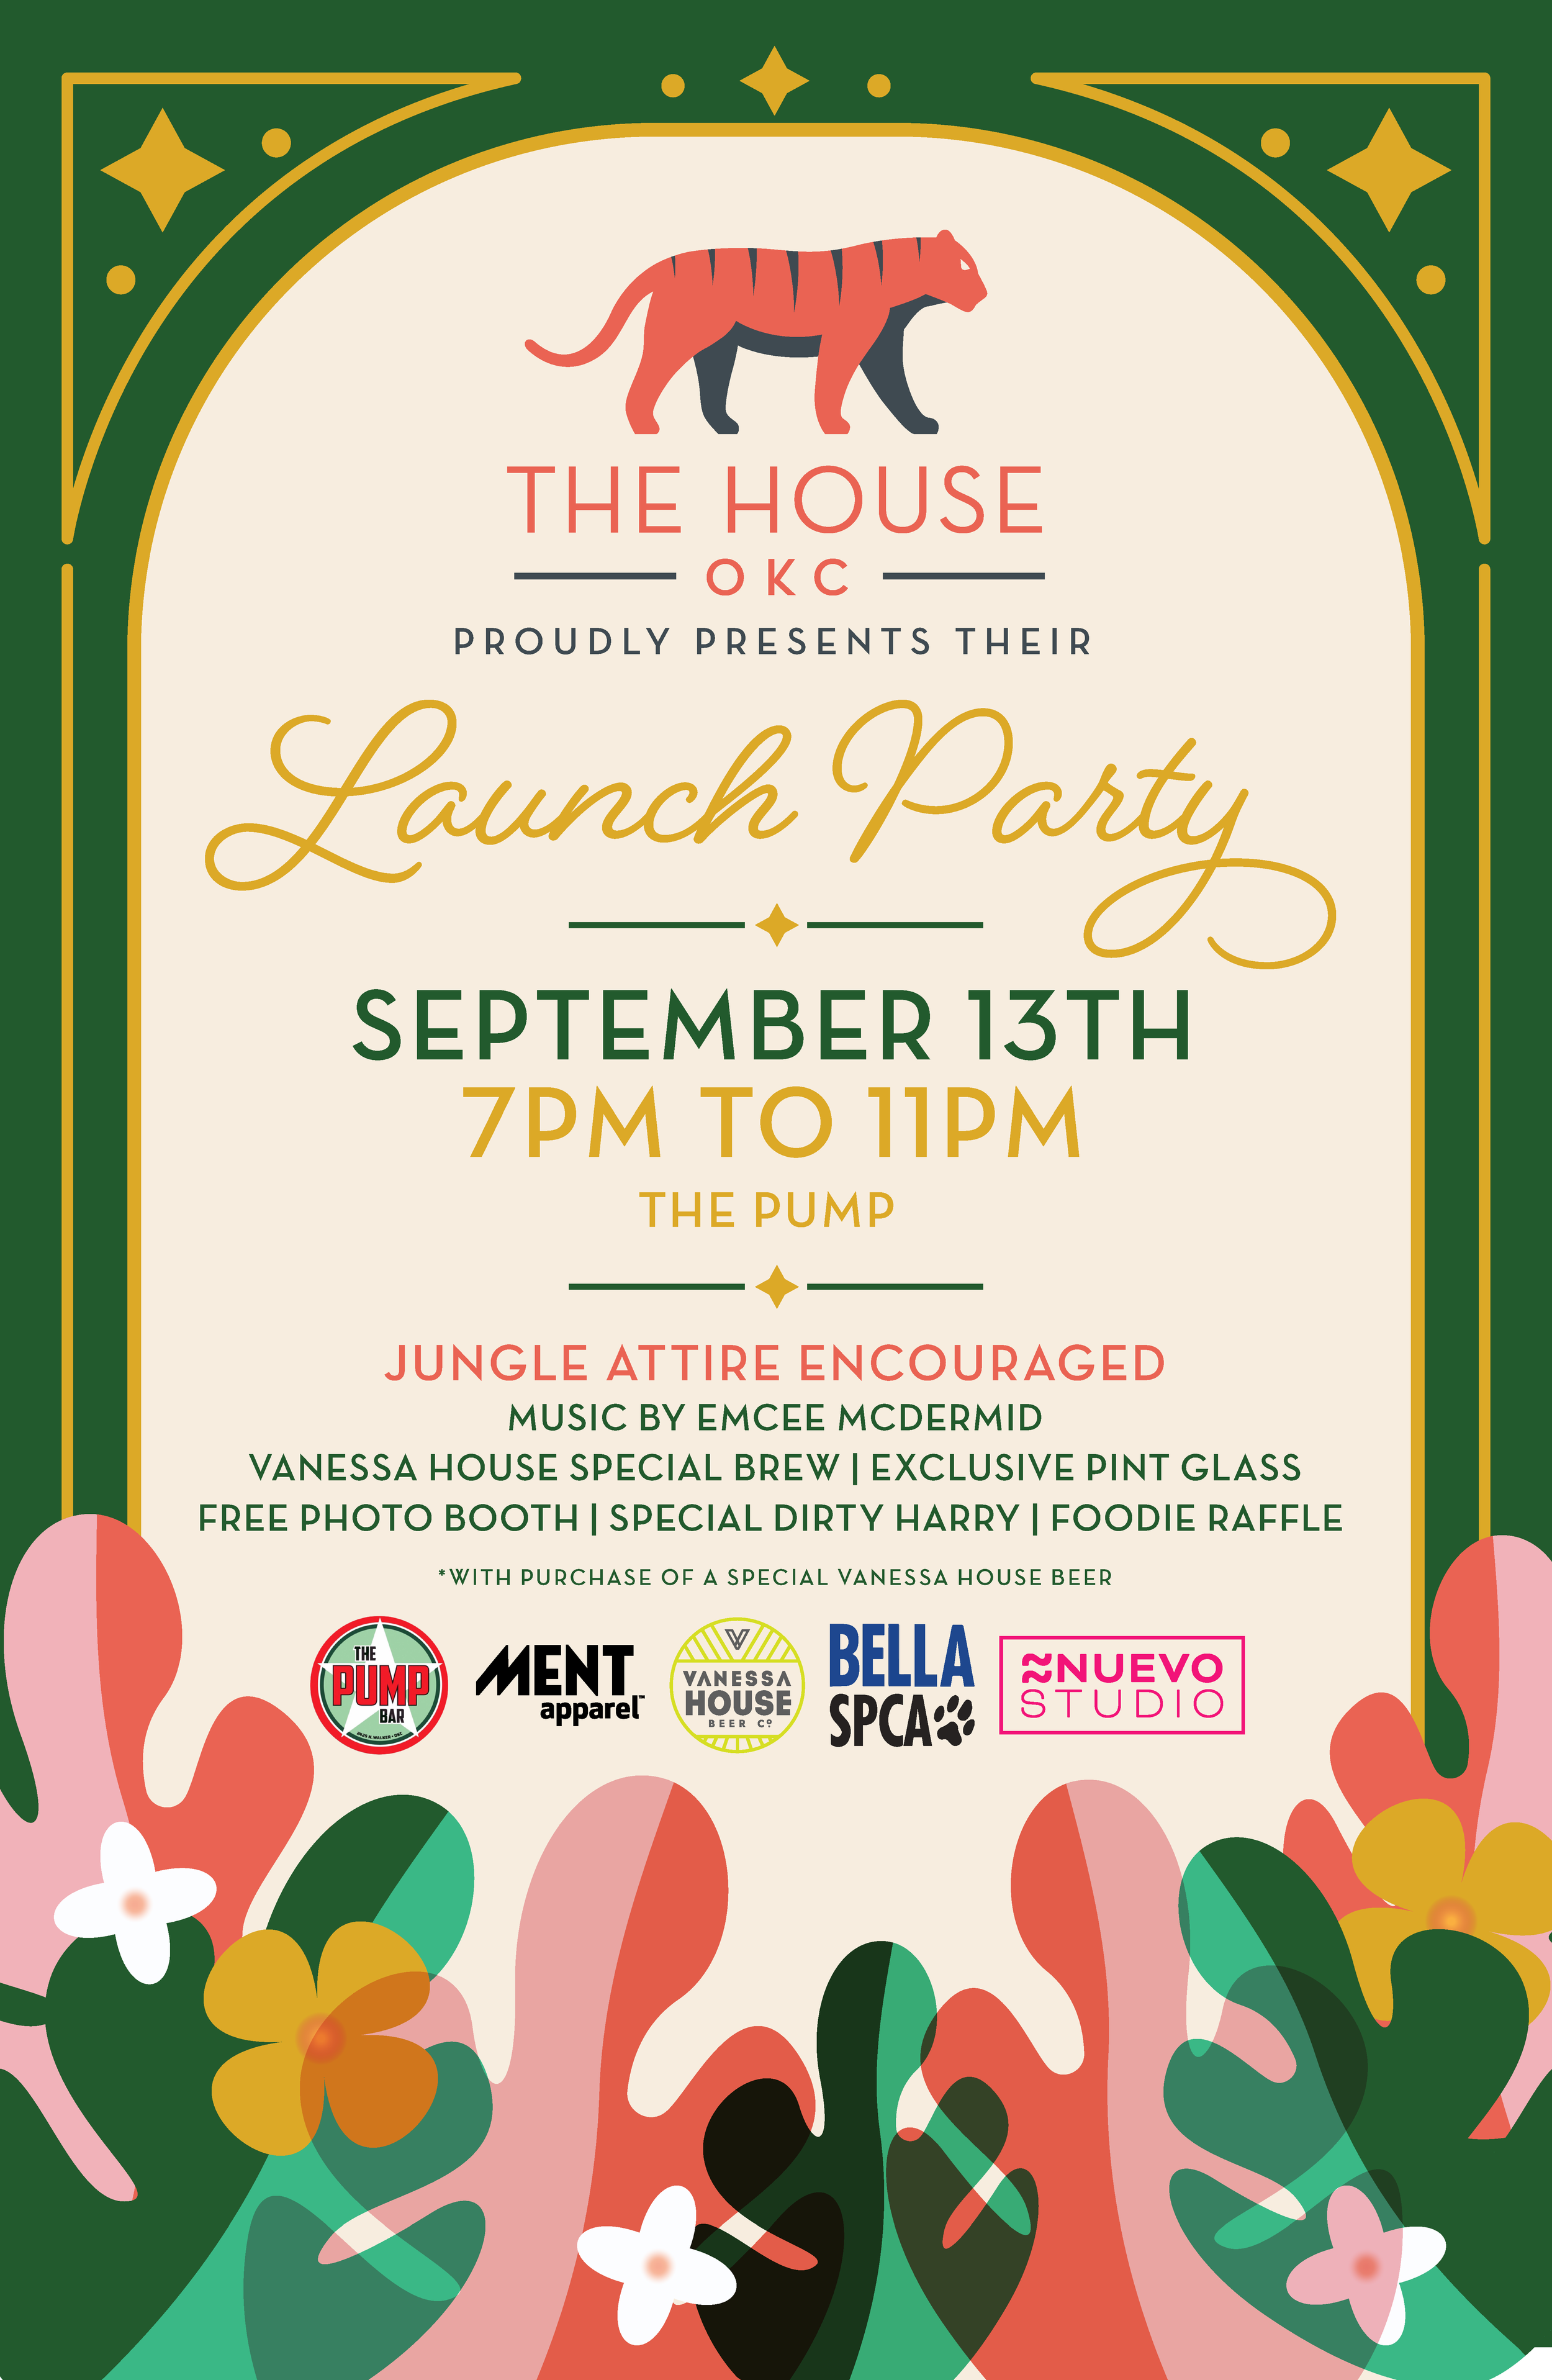 The House OKC Launch Party